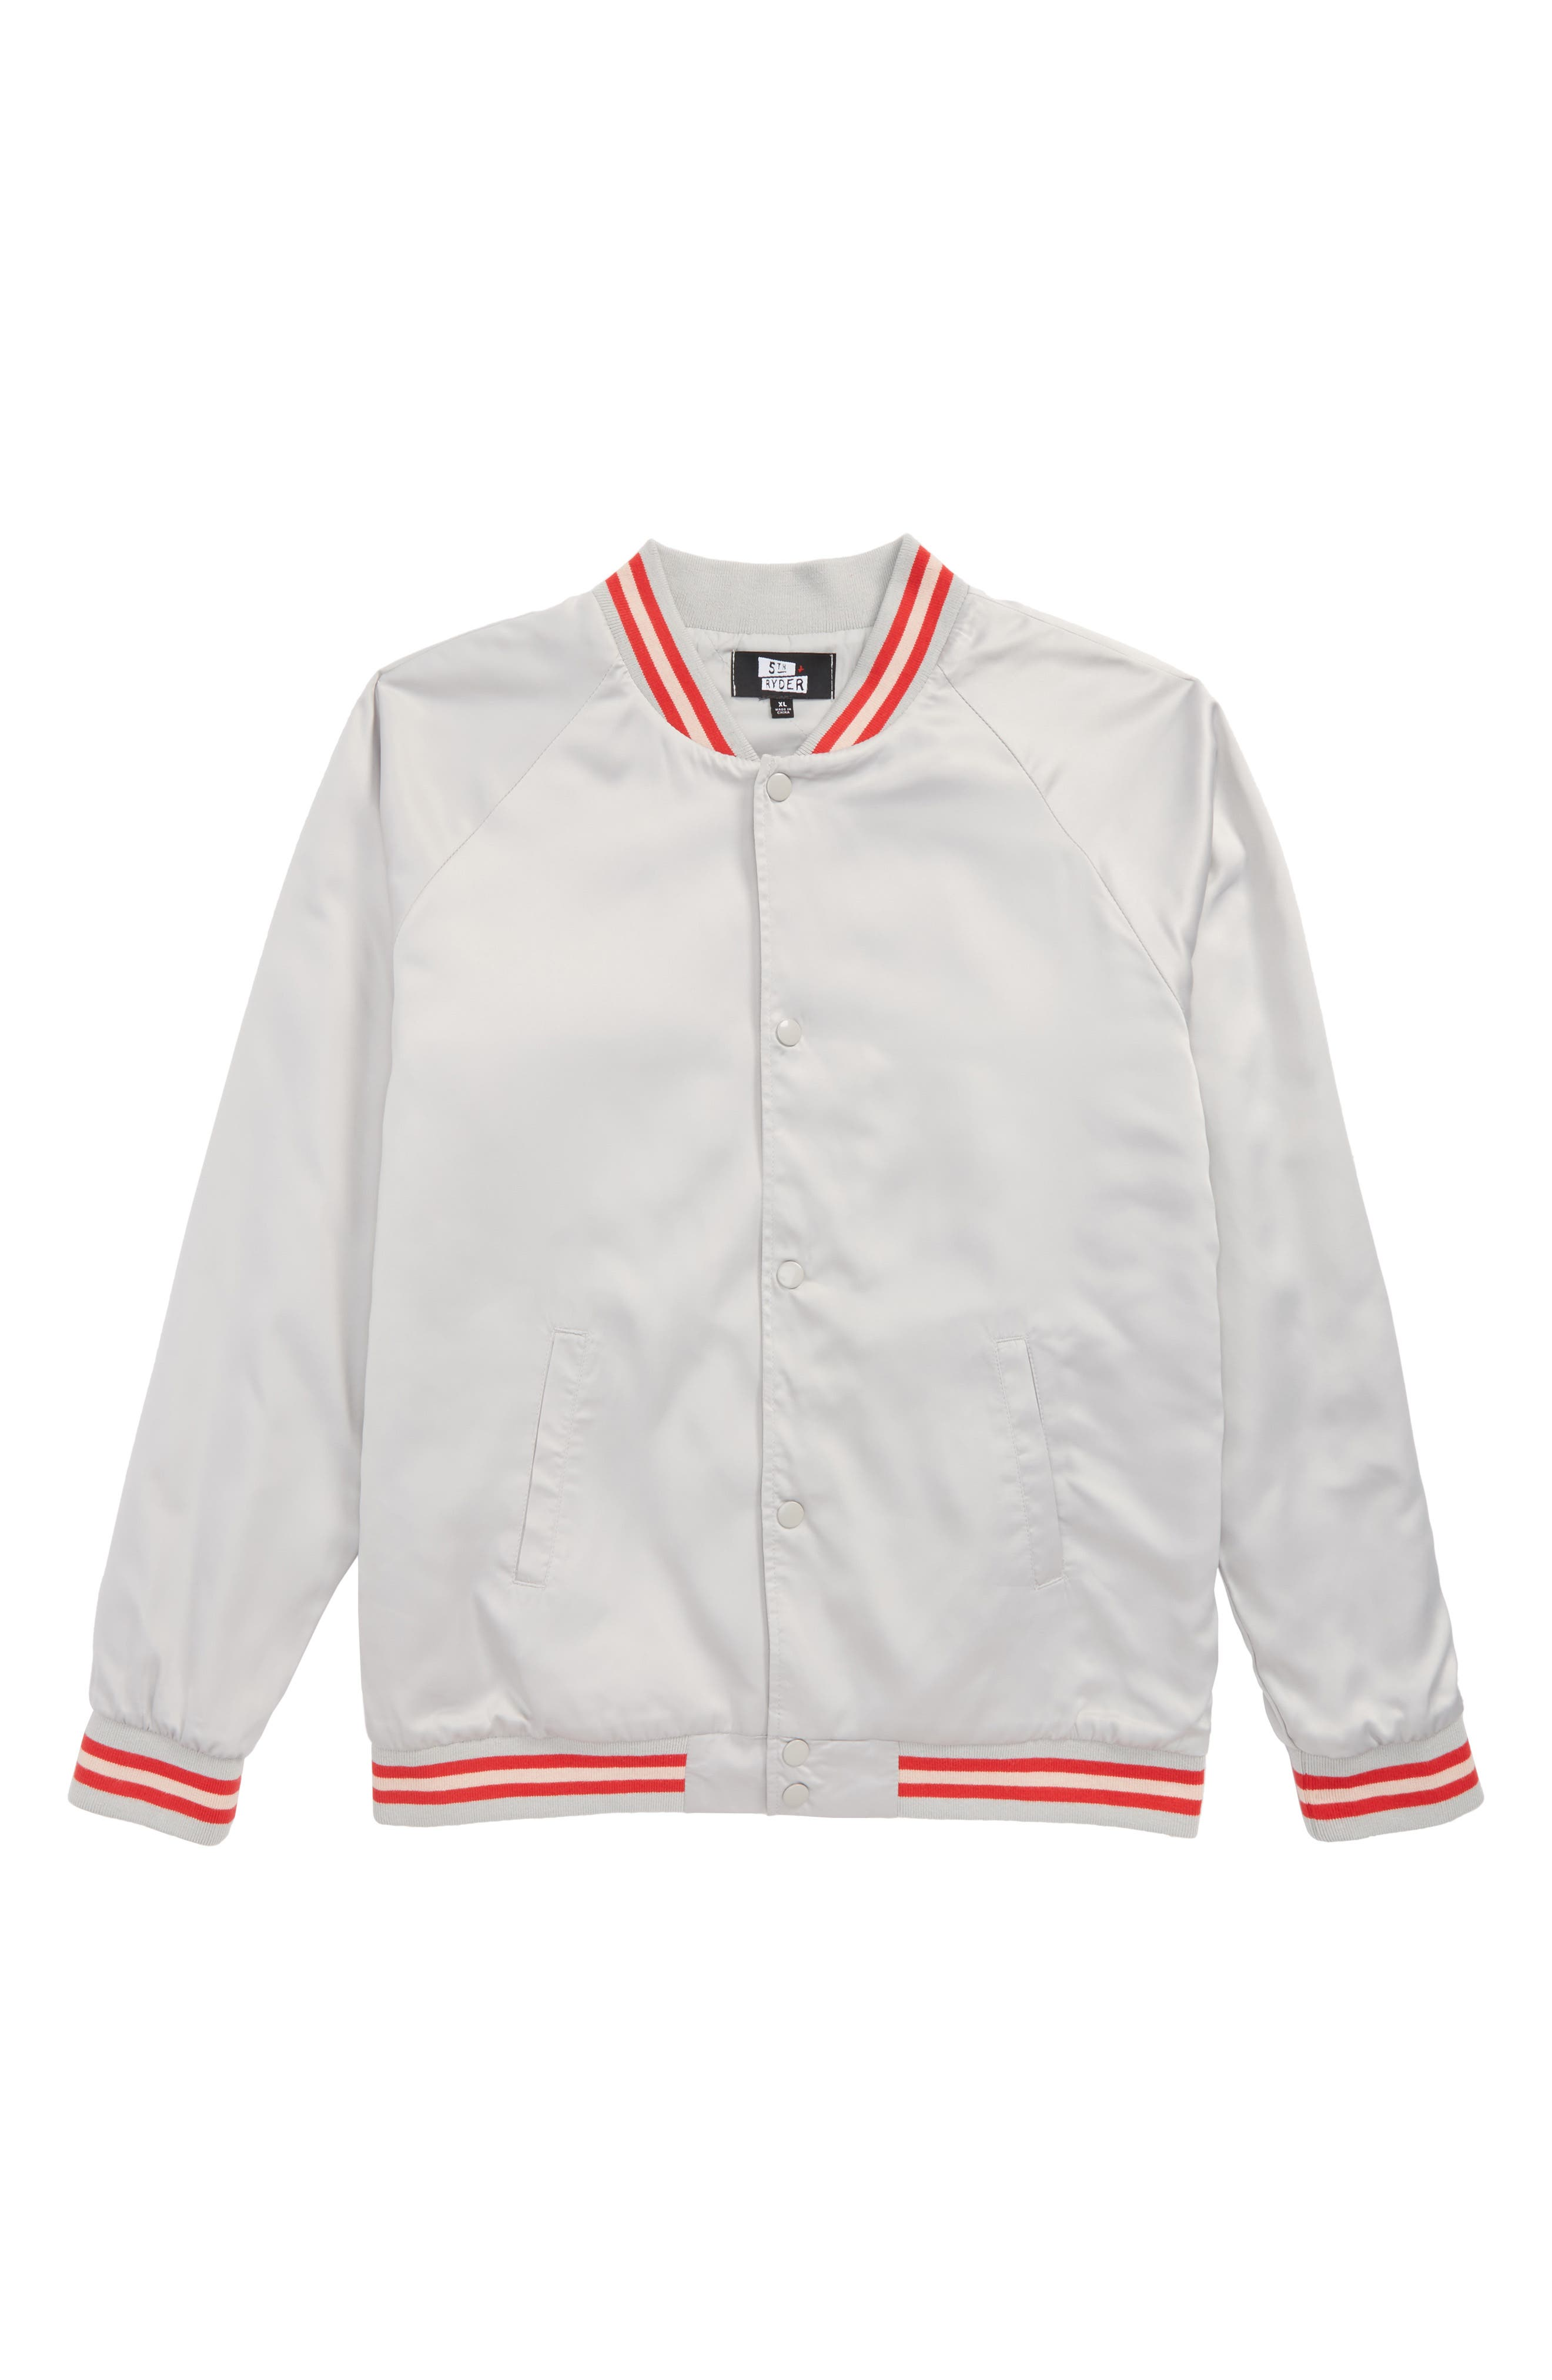 5th and Ryder Varsity Jacket (Big Boys)